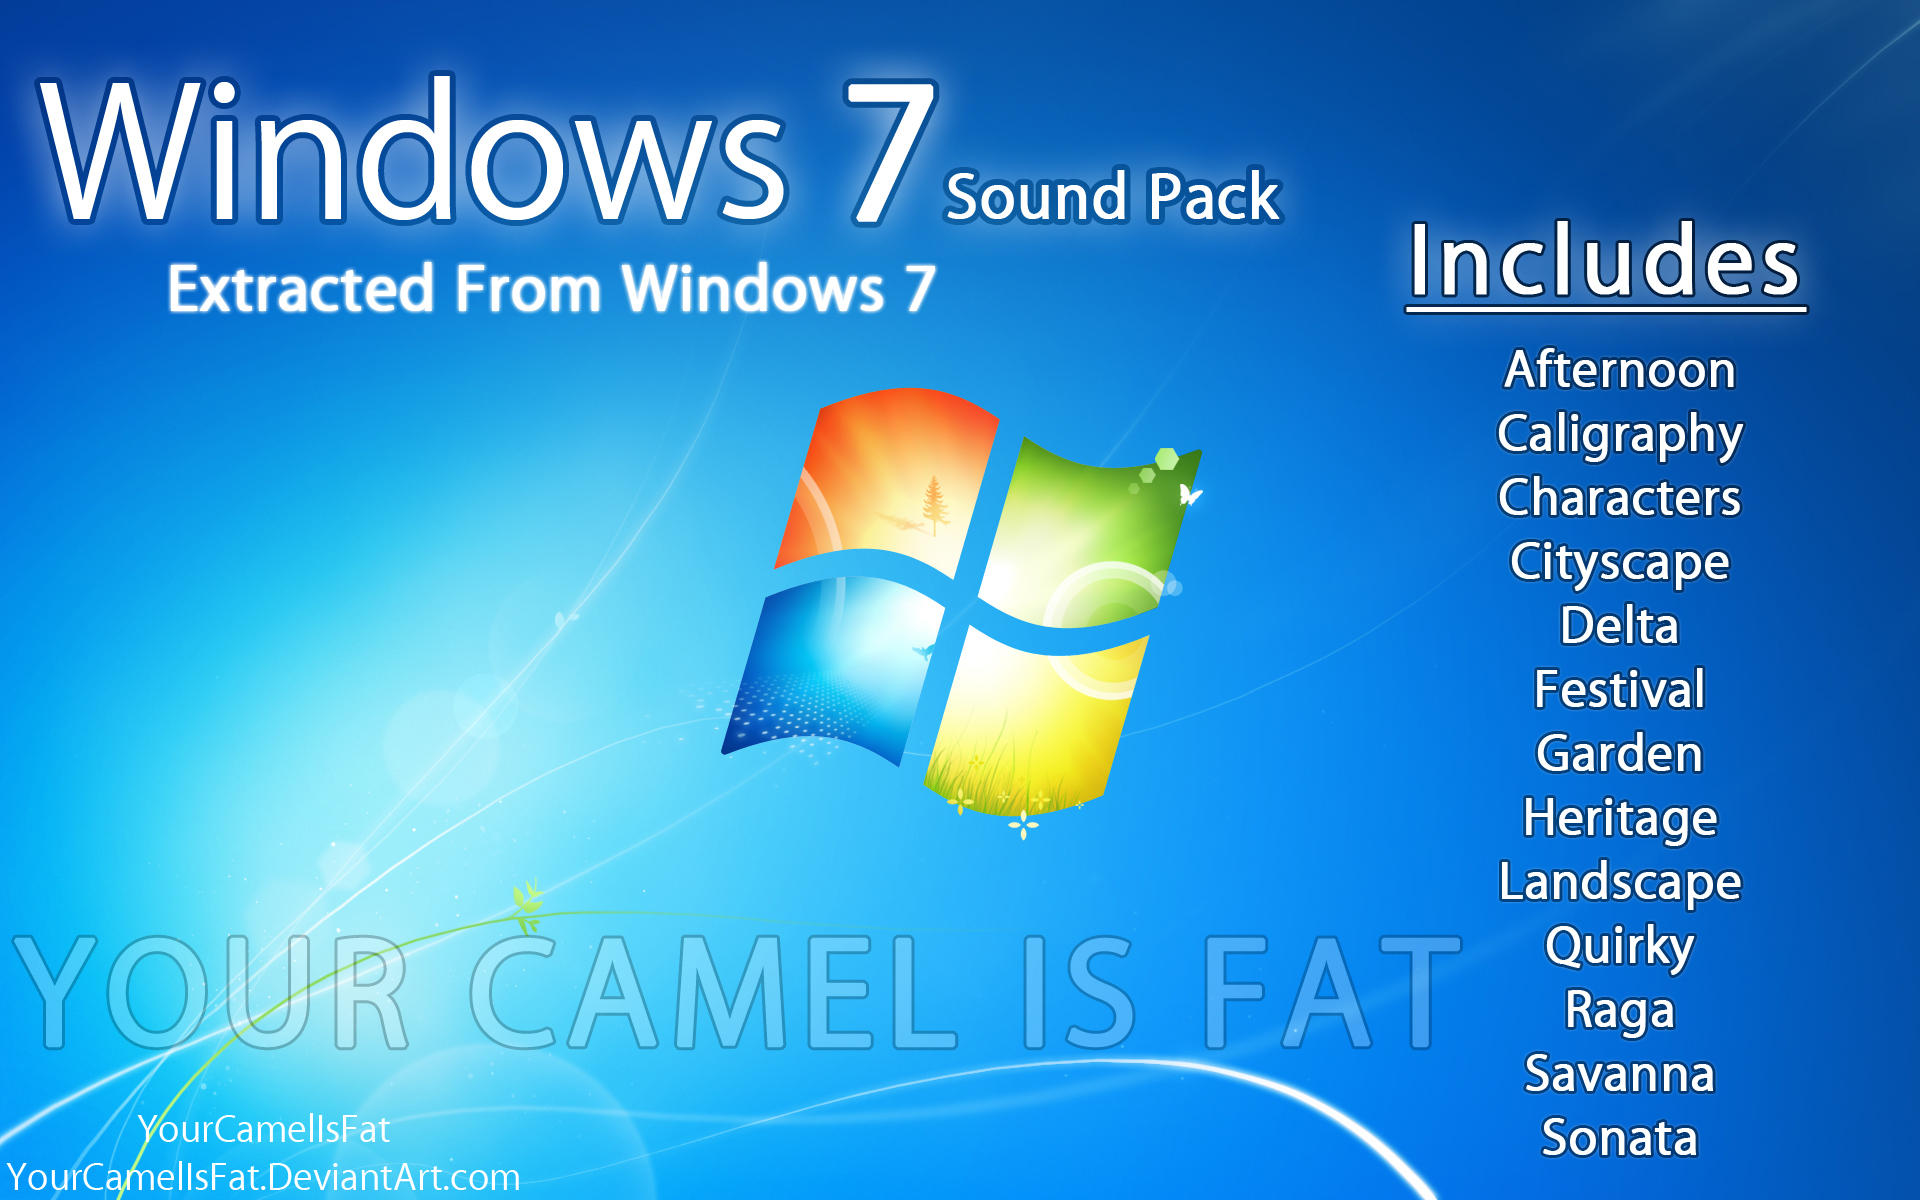 Windows 7 Sound Pack - ALL by YourCamelIsFat